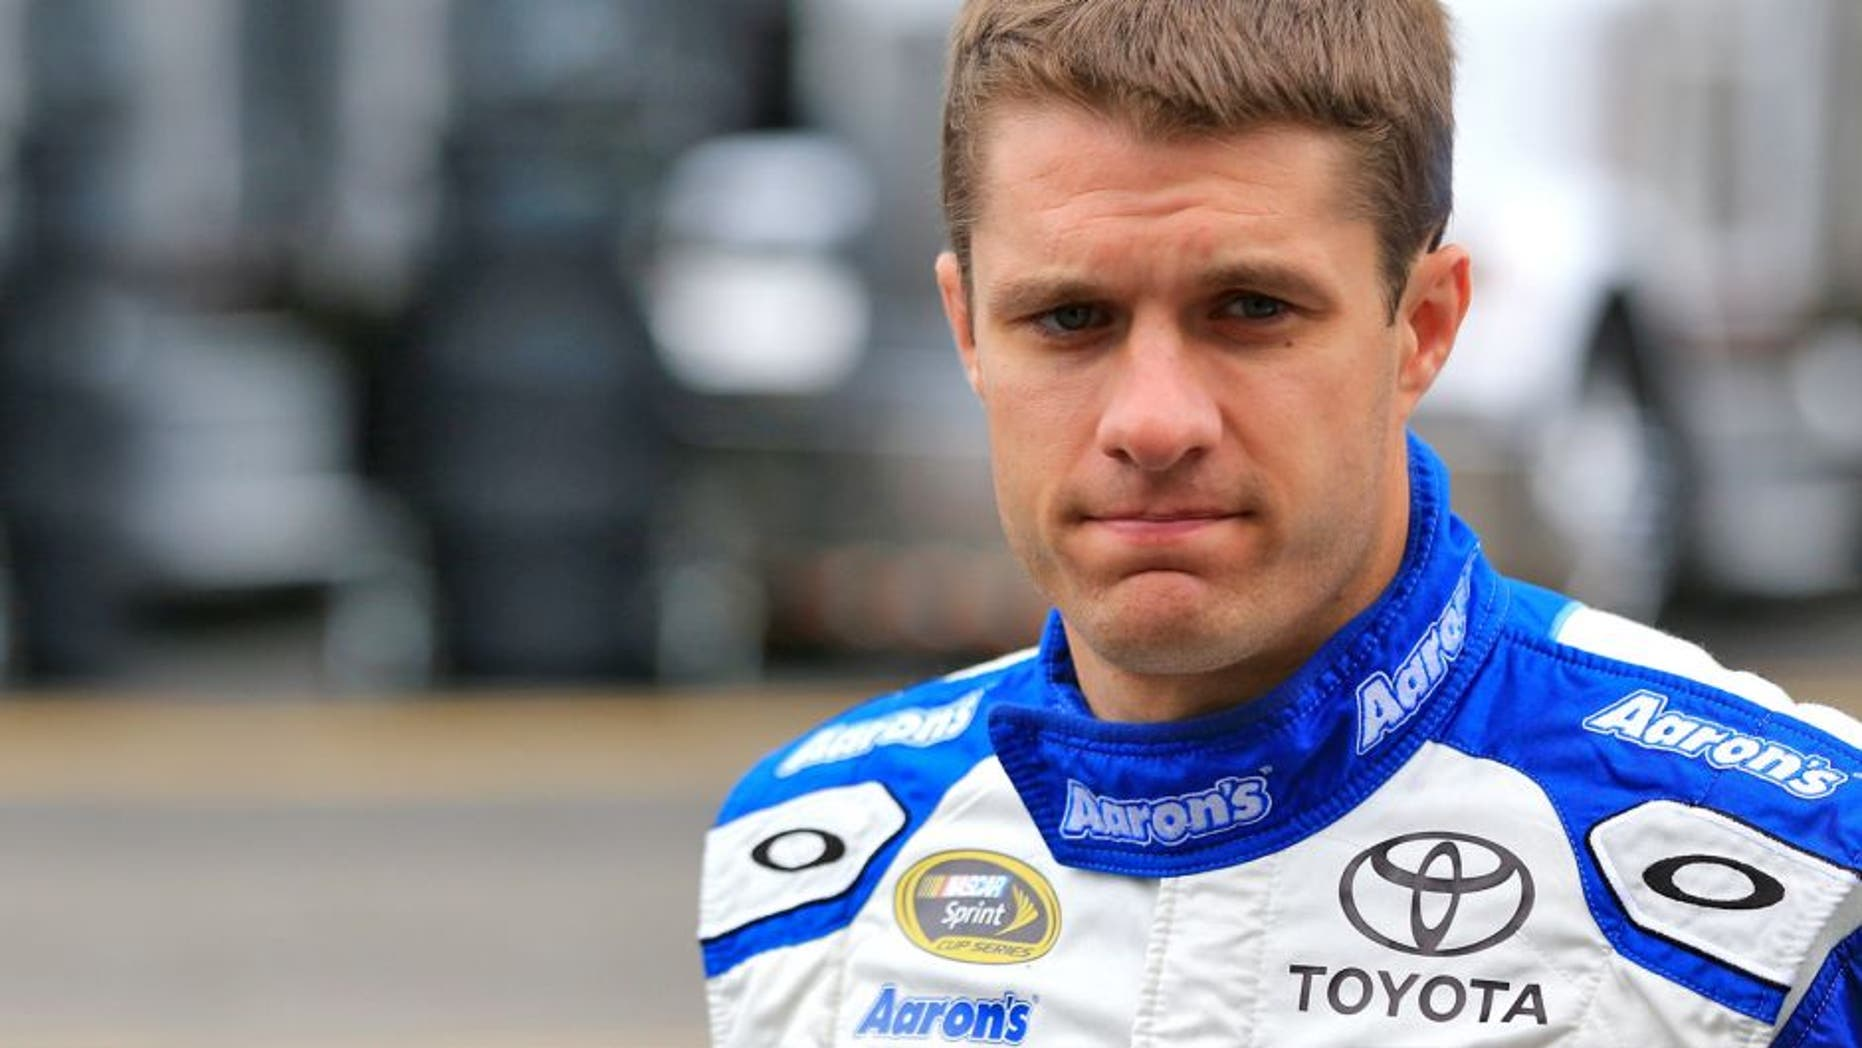 SPARTA, KY - JULY 10: David Ragan, driver of the #55 Aaron's Dream Machine Toyota, walks through the garage area during practice for the NASCAR Sprint Cup Series Quaker State 400 Presented by Advance Auto Parts at Kentucky Speedway on July 10, 2015 in Sparta, Kentucky. (Photo by Daniel Shirey/Getty Images)